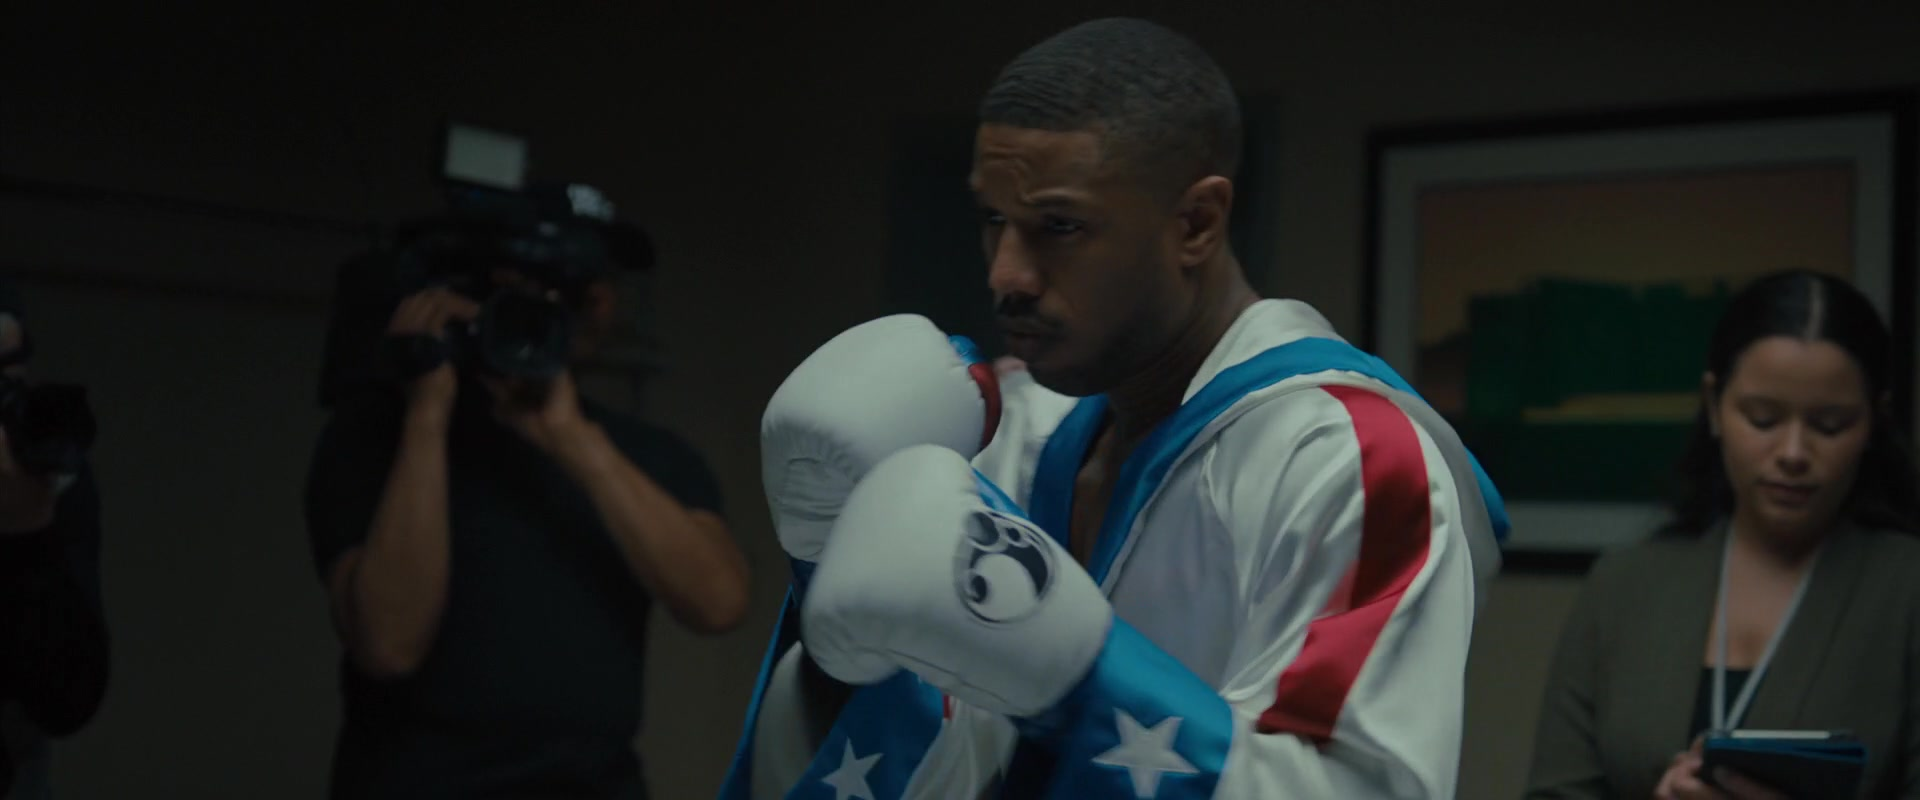 493bfb4ee57e1b Grant White Boxing Gloves Worn by Michael B. Jordan in Creed 2 (2018 ...